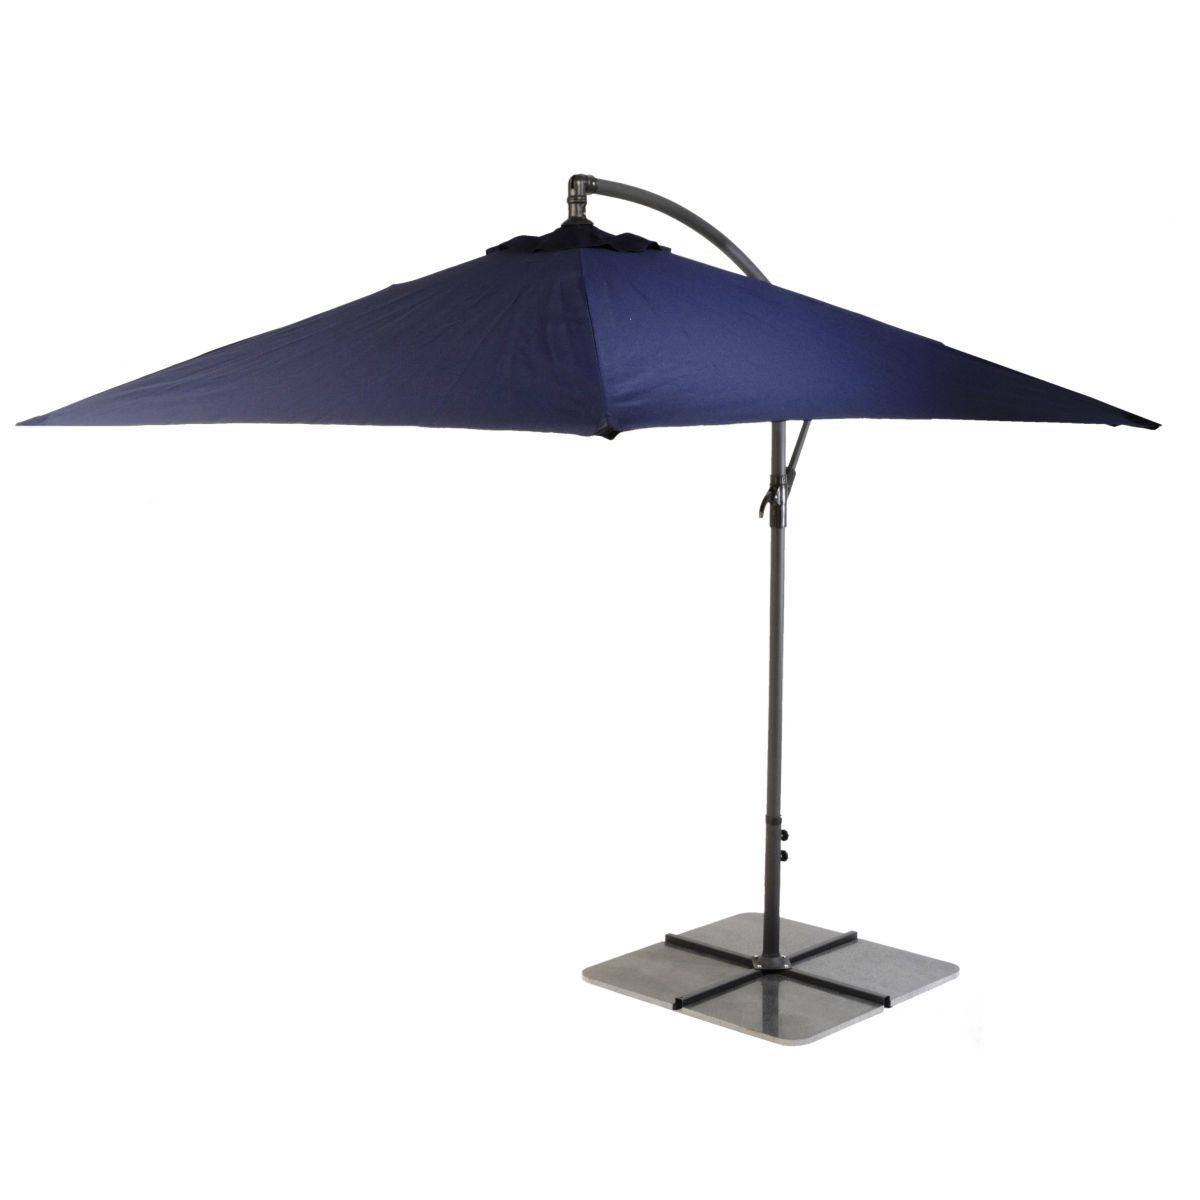 Best And Newest Maidenhead Cantilever Umbrellas Intended For Oaktree Garden Centre Glencrest Parasol Sturdi Plus Cantilever 3M (View 17 of 20)